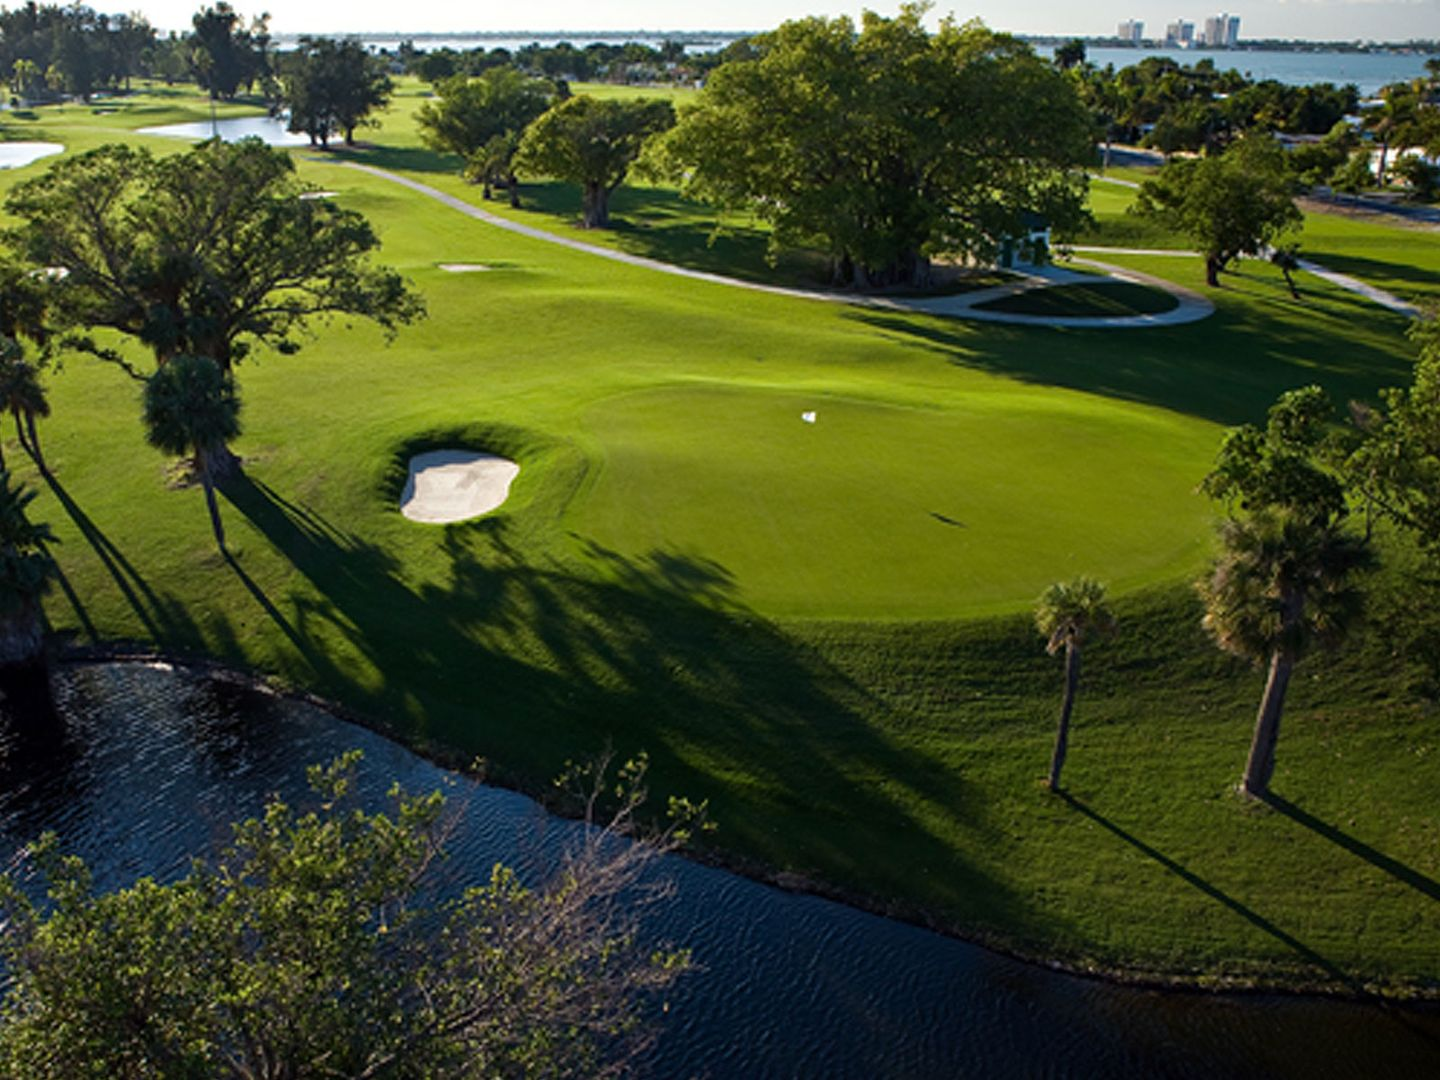 normandy shores golf course in miami beach, florida, usa